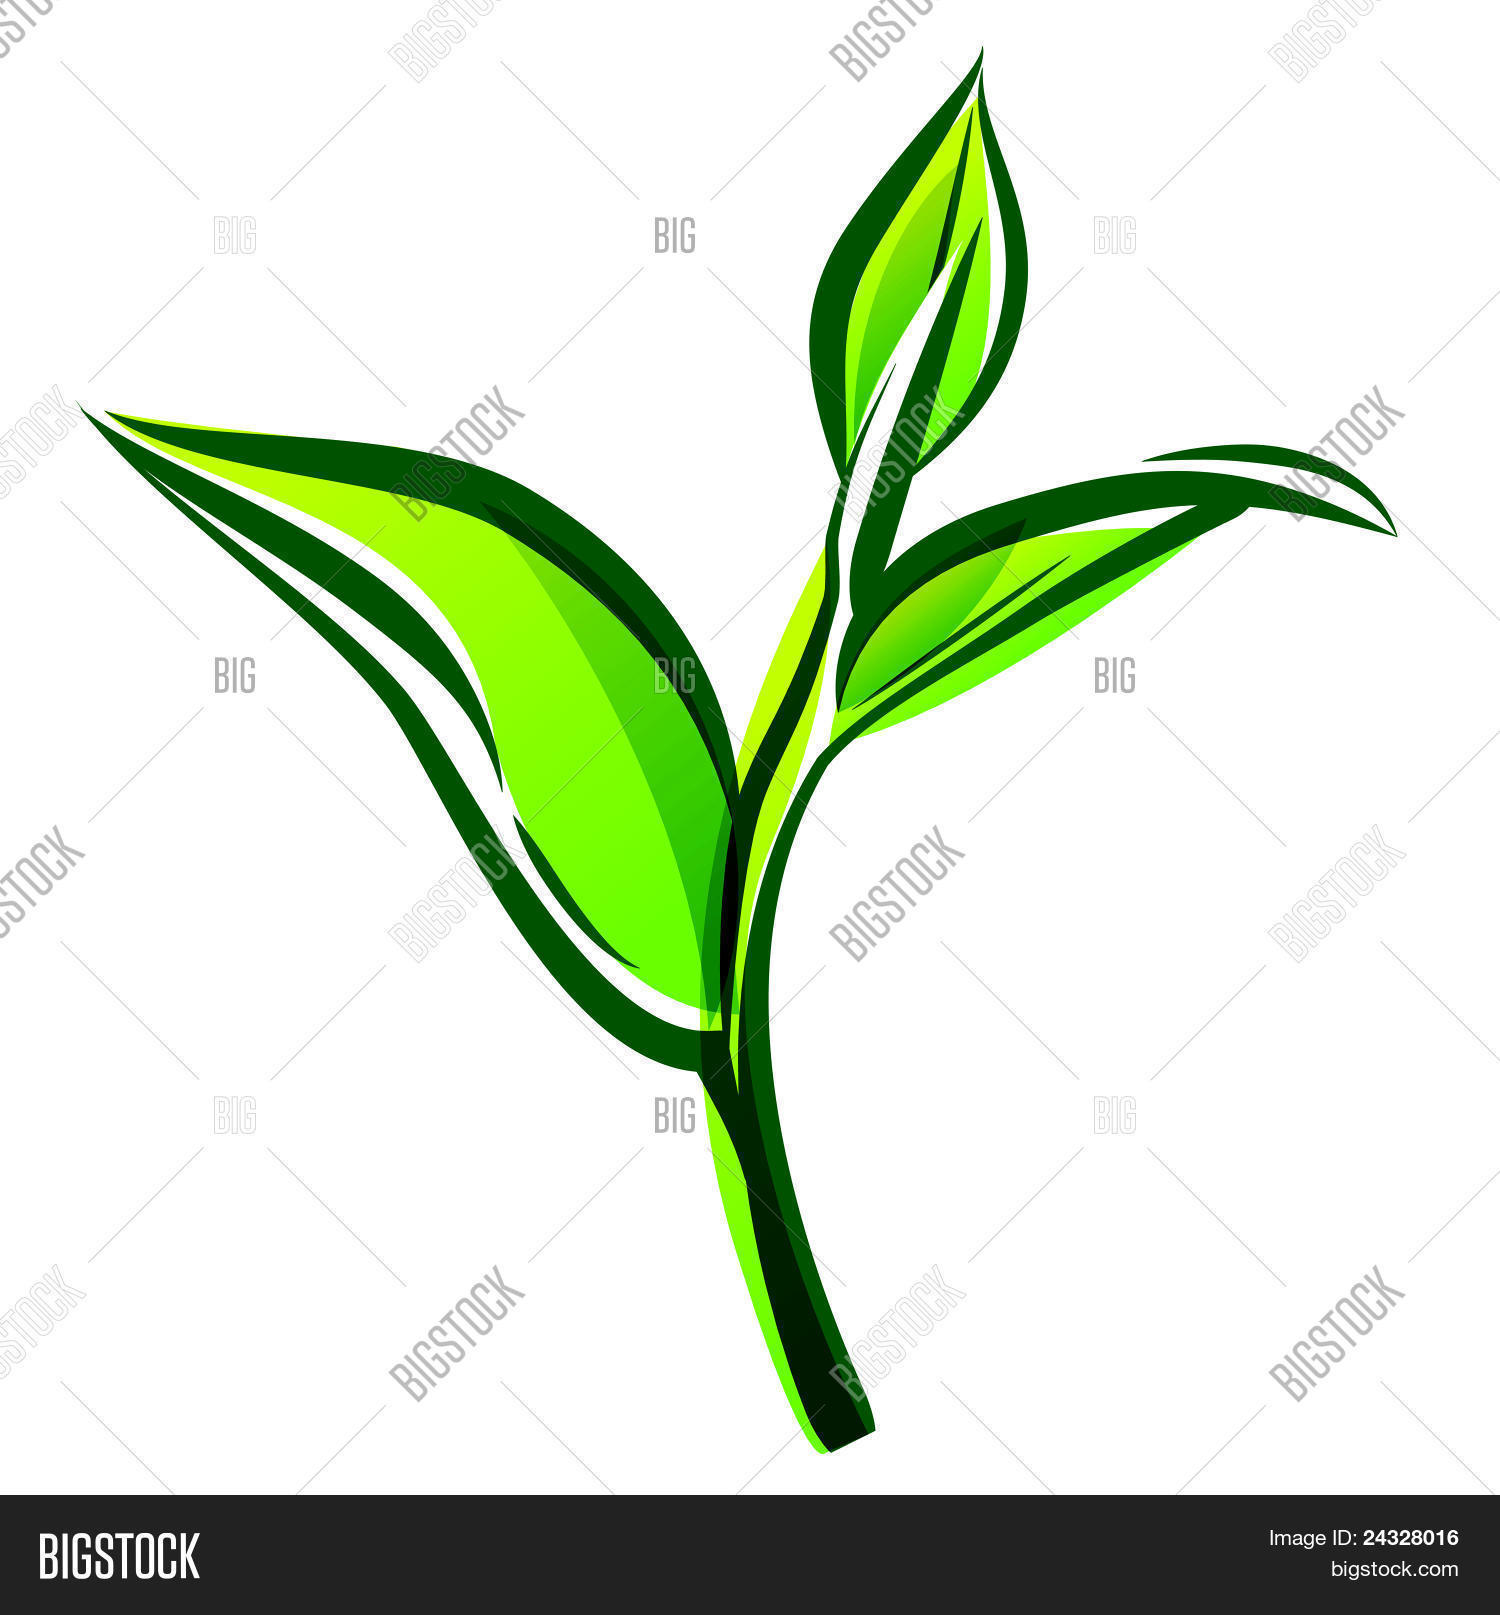 Green Tea Leaf Vector & Photo | Bigstock